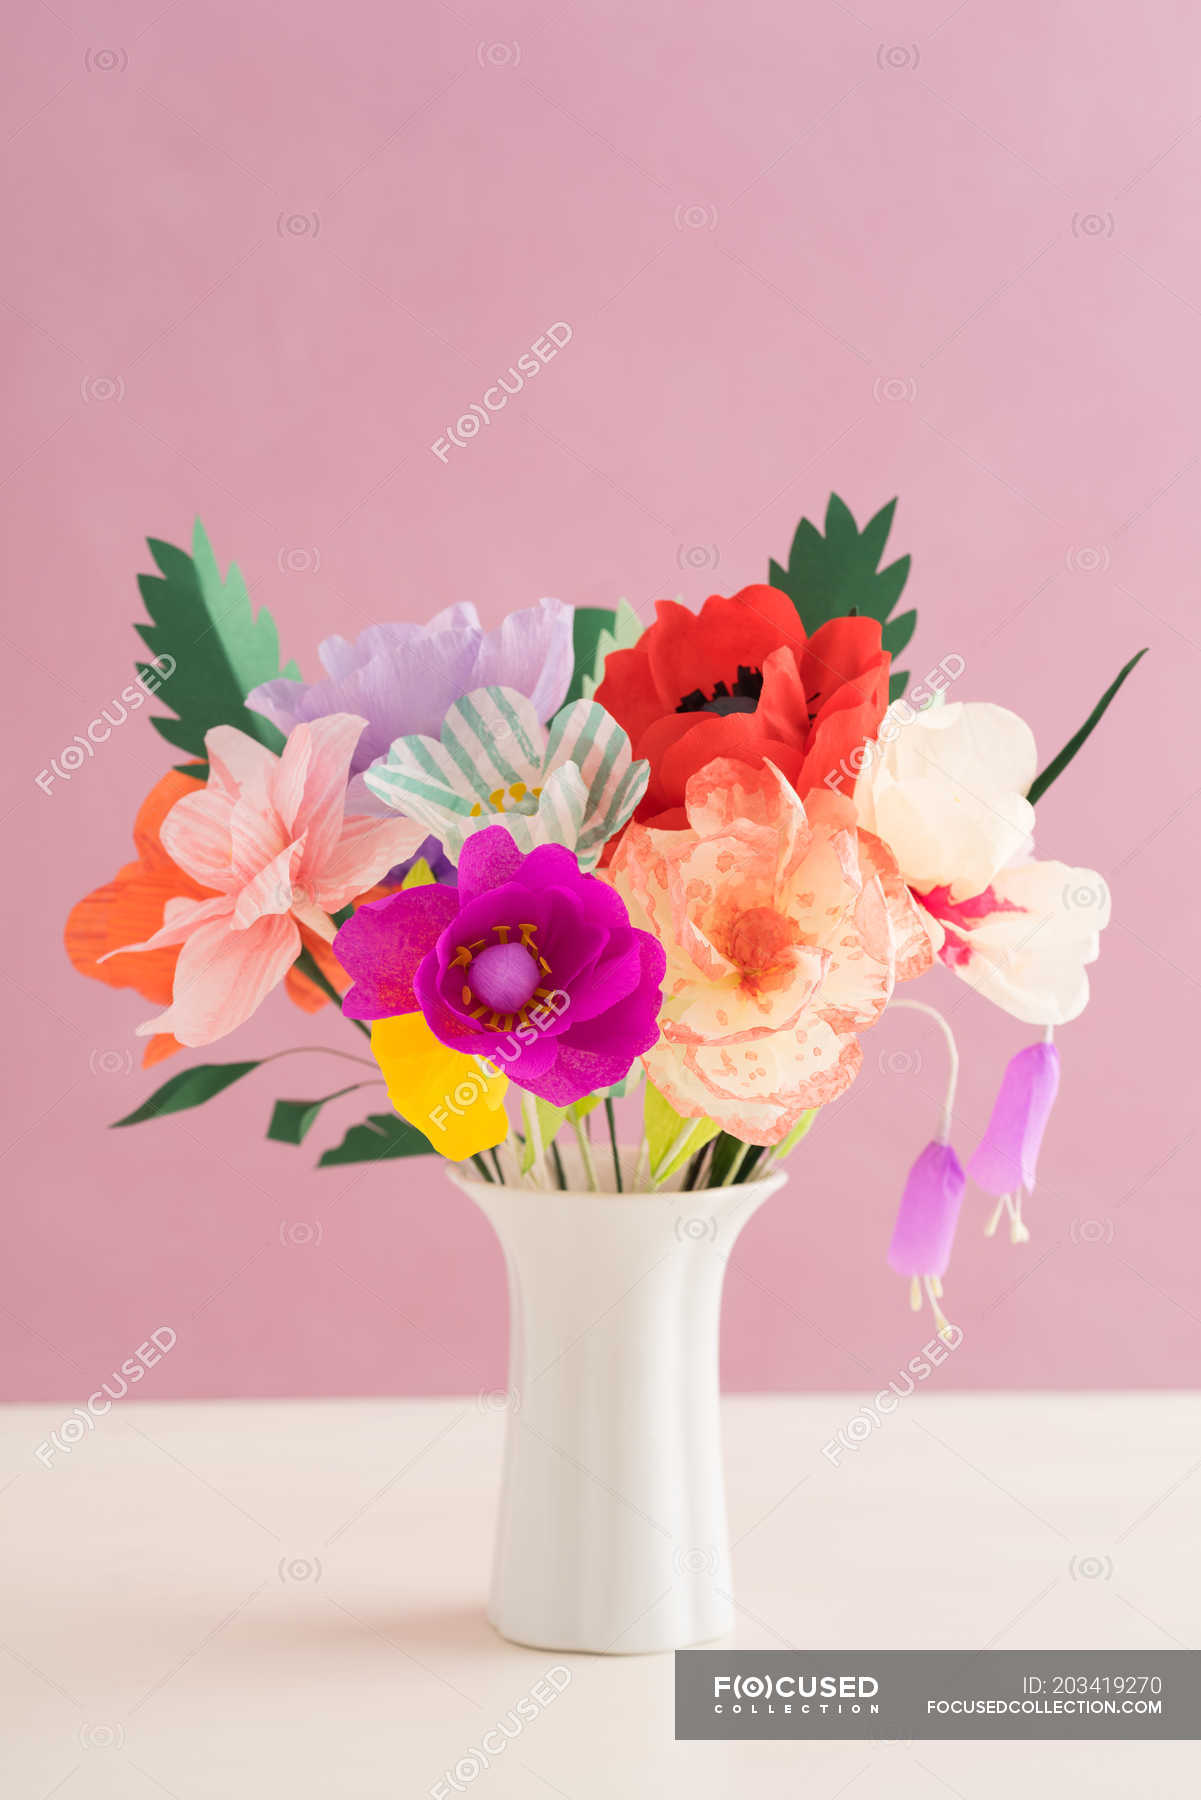 Creative Colorful Paper Flowers Bouquet In Vase Pink Background